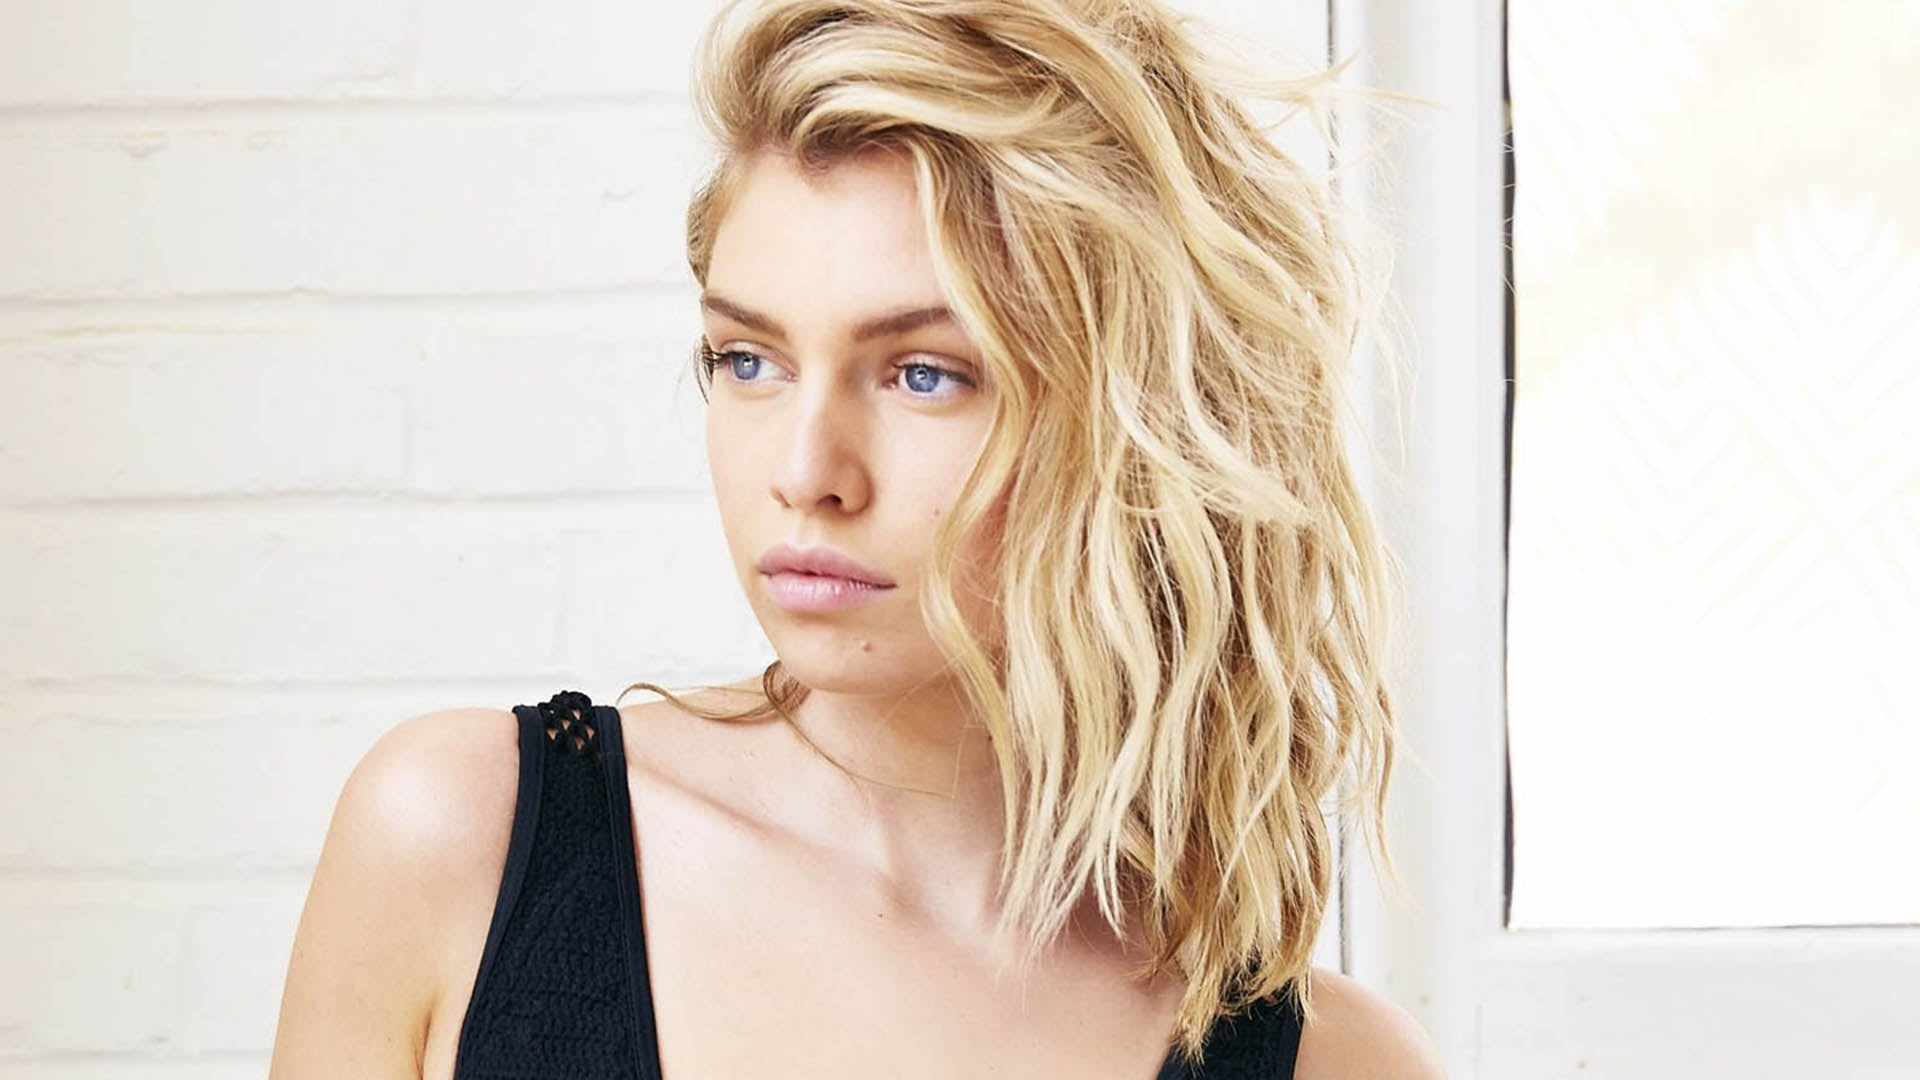 Download Car Wallpapers For Laptop Stella Maxwell Hd Wallpapers High Quality